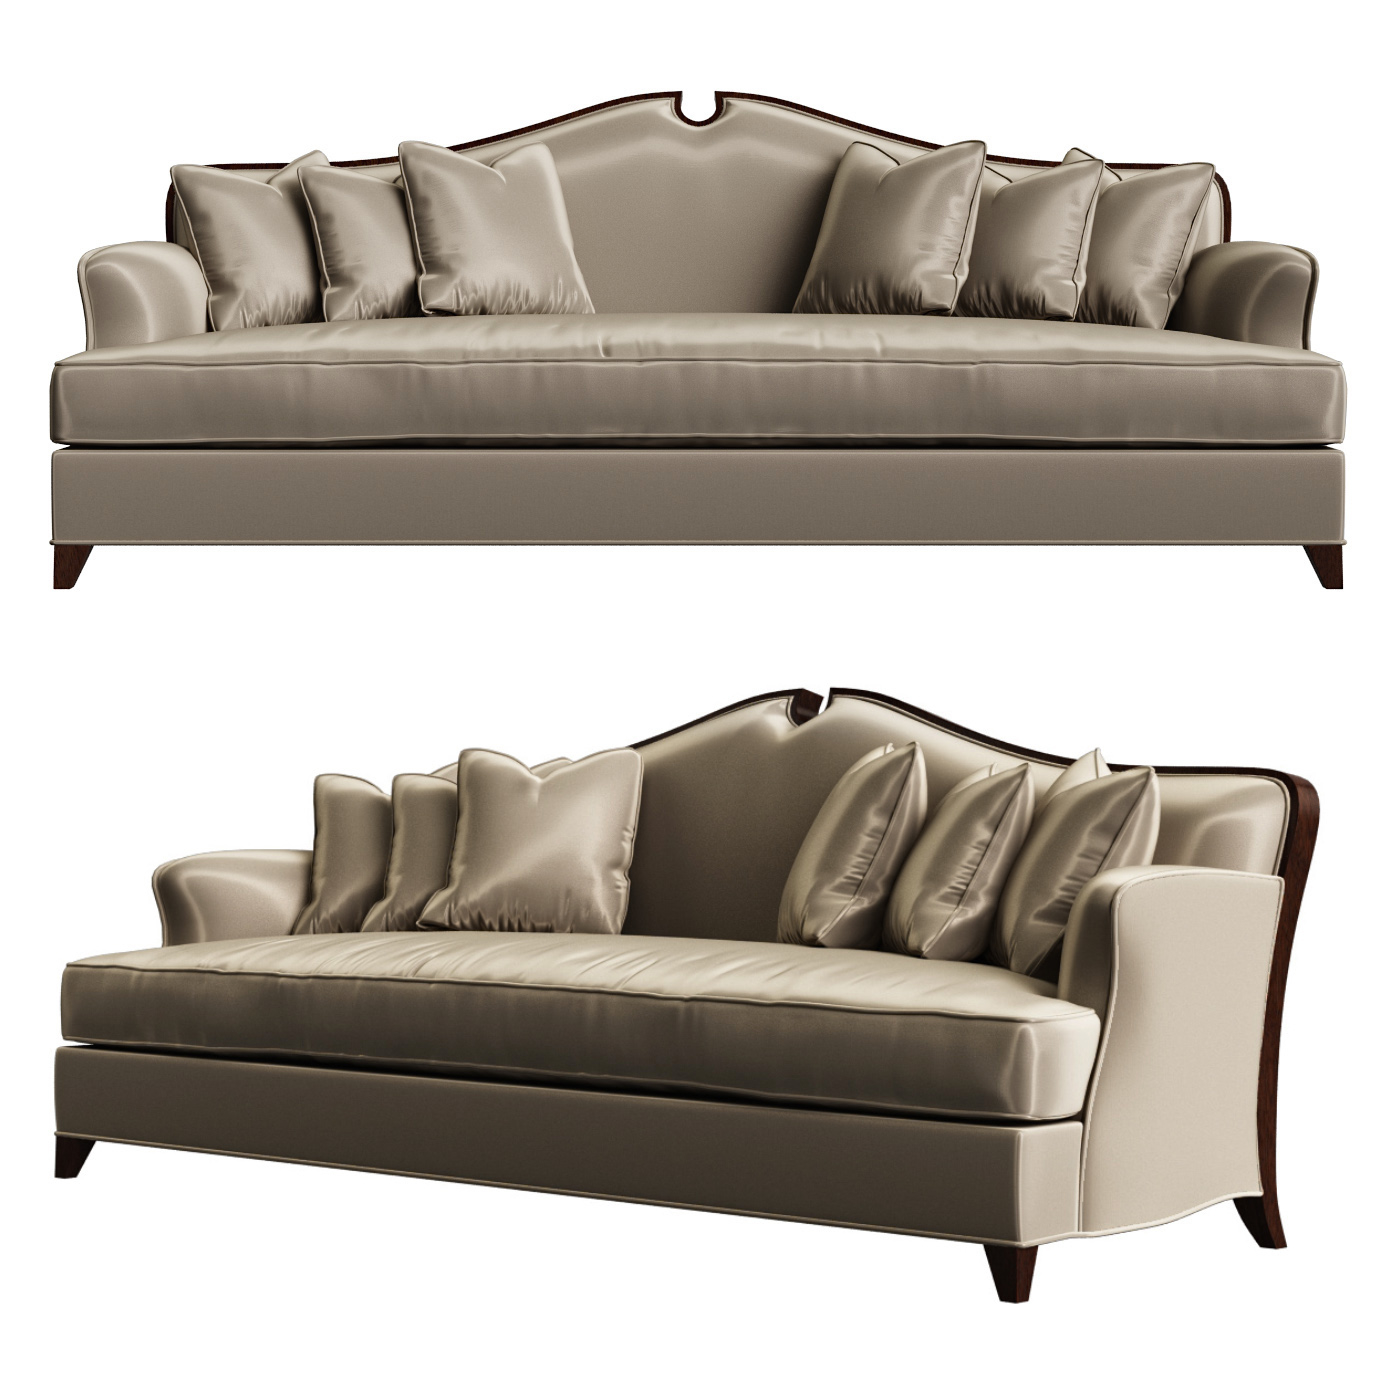 Christopher Guy Arch Sofa 60 0472